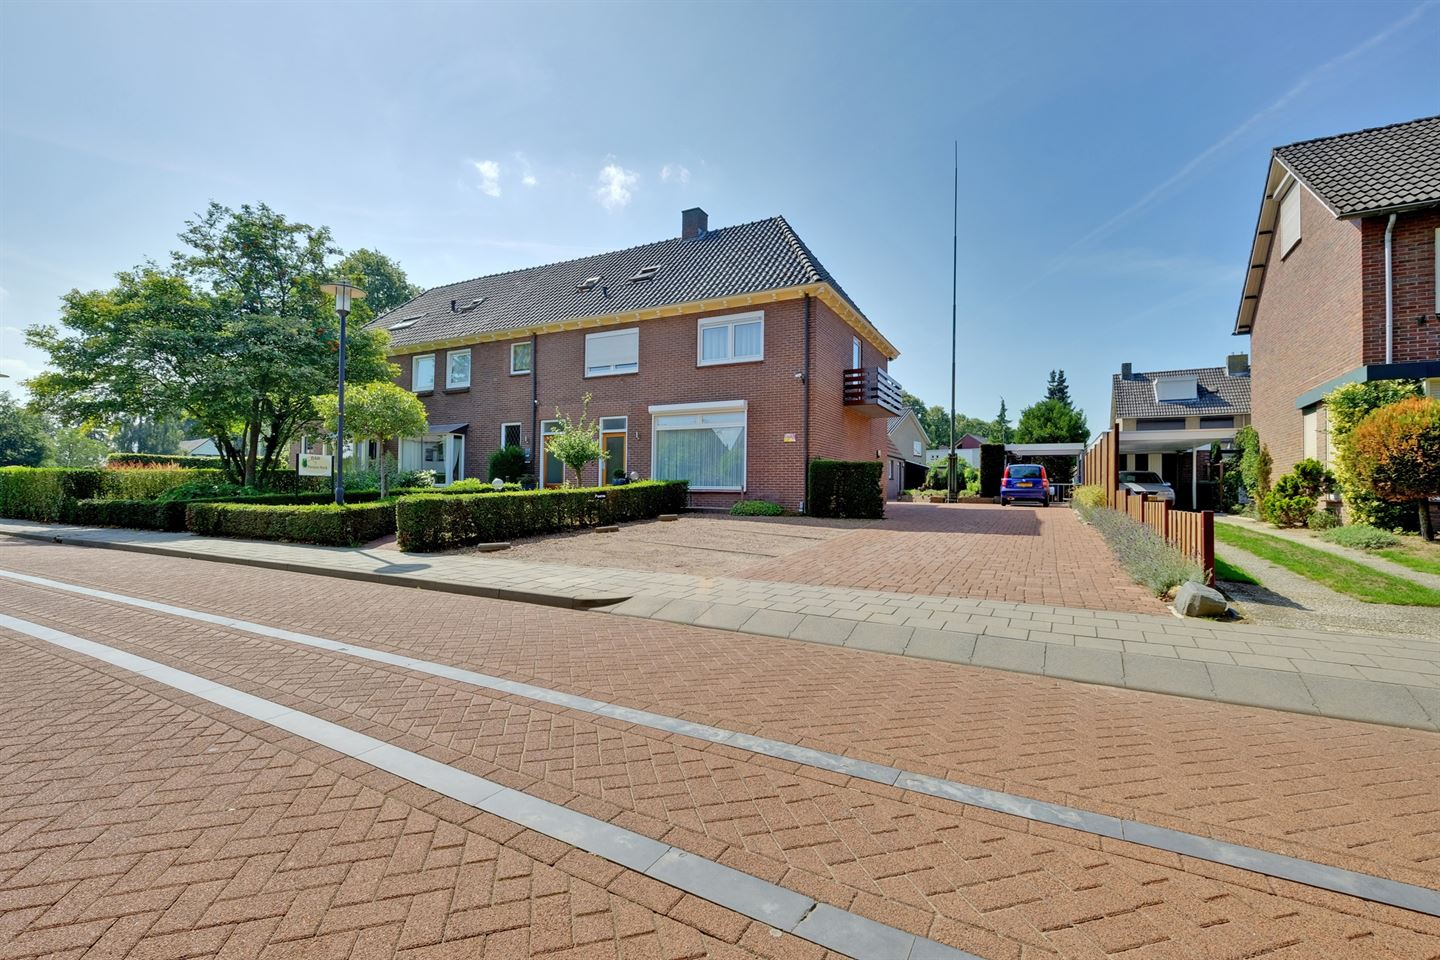 View photo 2 of Oude Doetinchemseweg 5 a